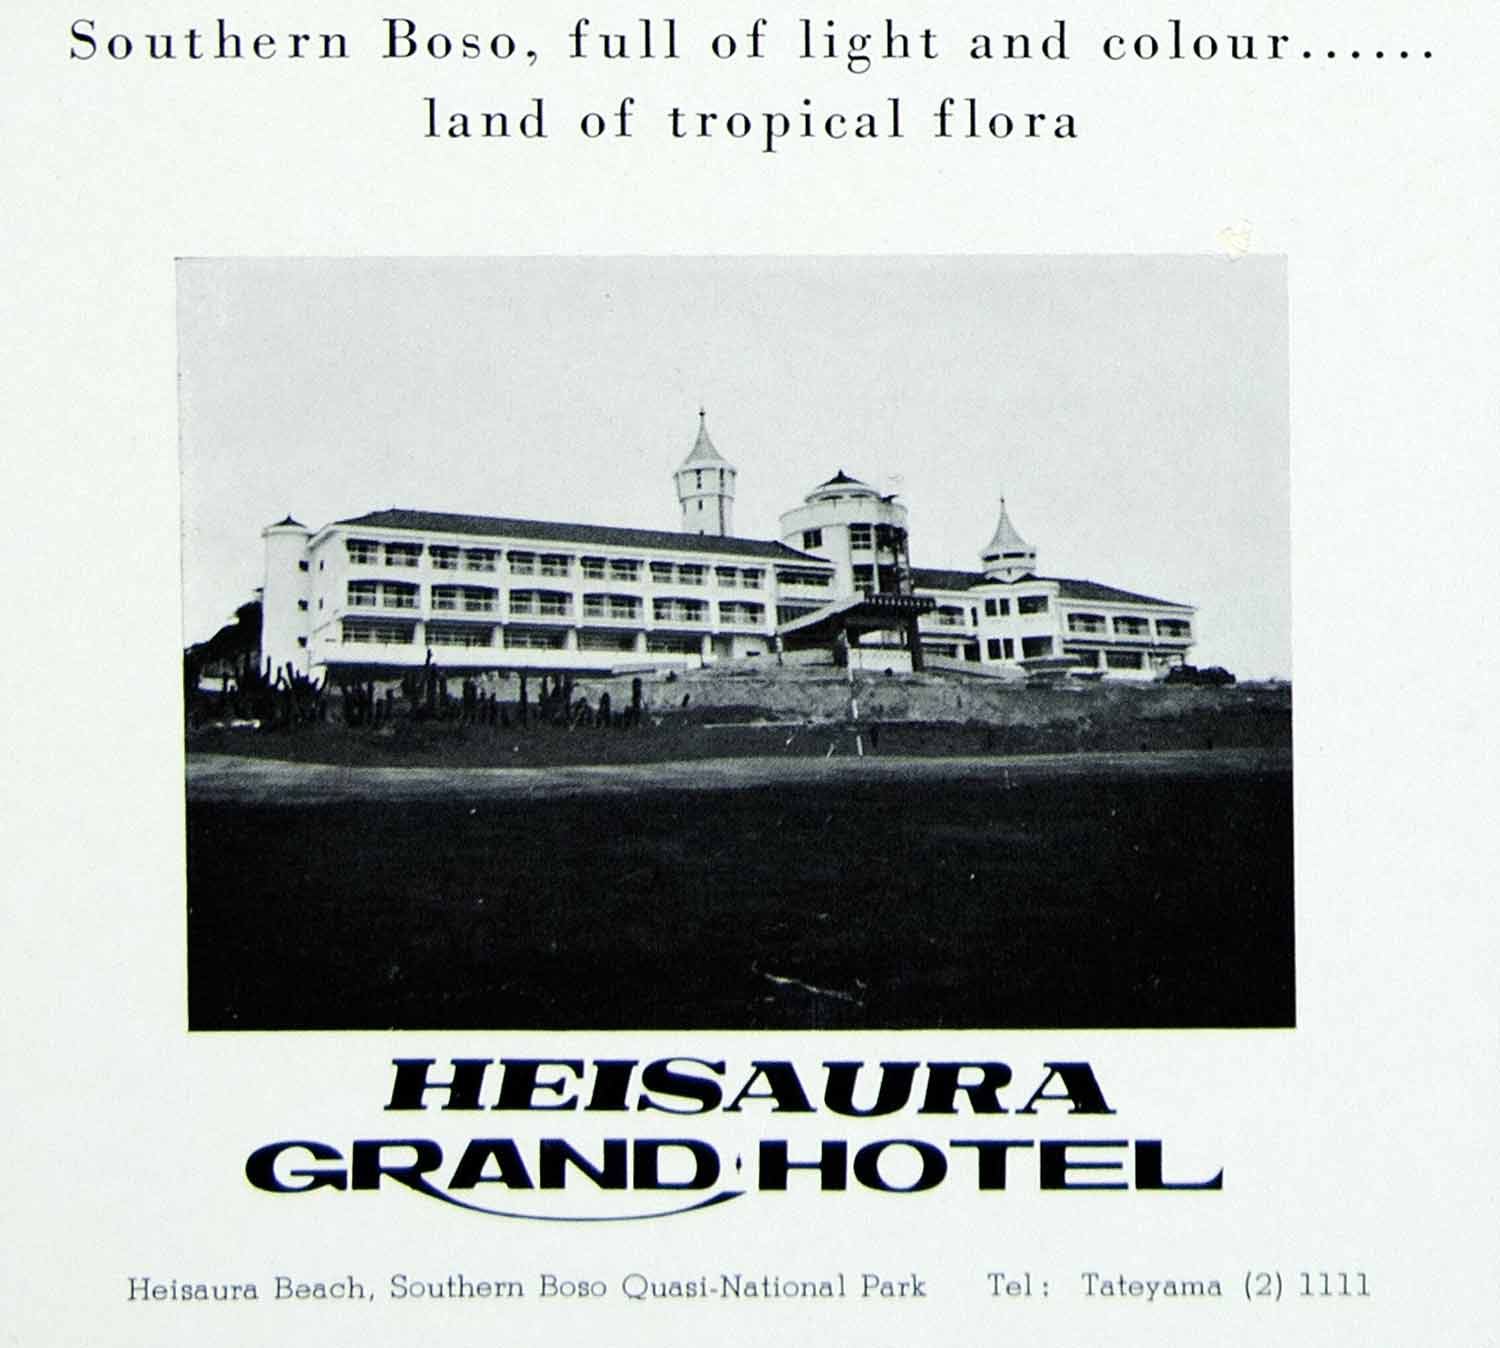 1968 Ad Heisaura Grand Hotel Southern Boso Japanese Lodging Asian Beach XGGD7